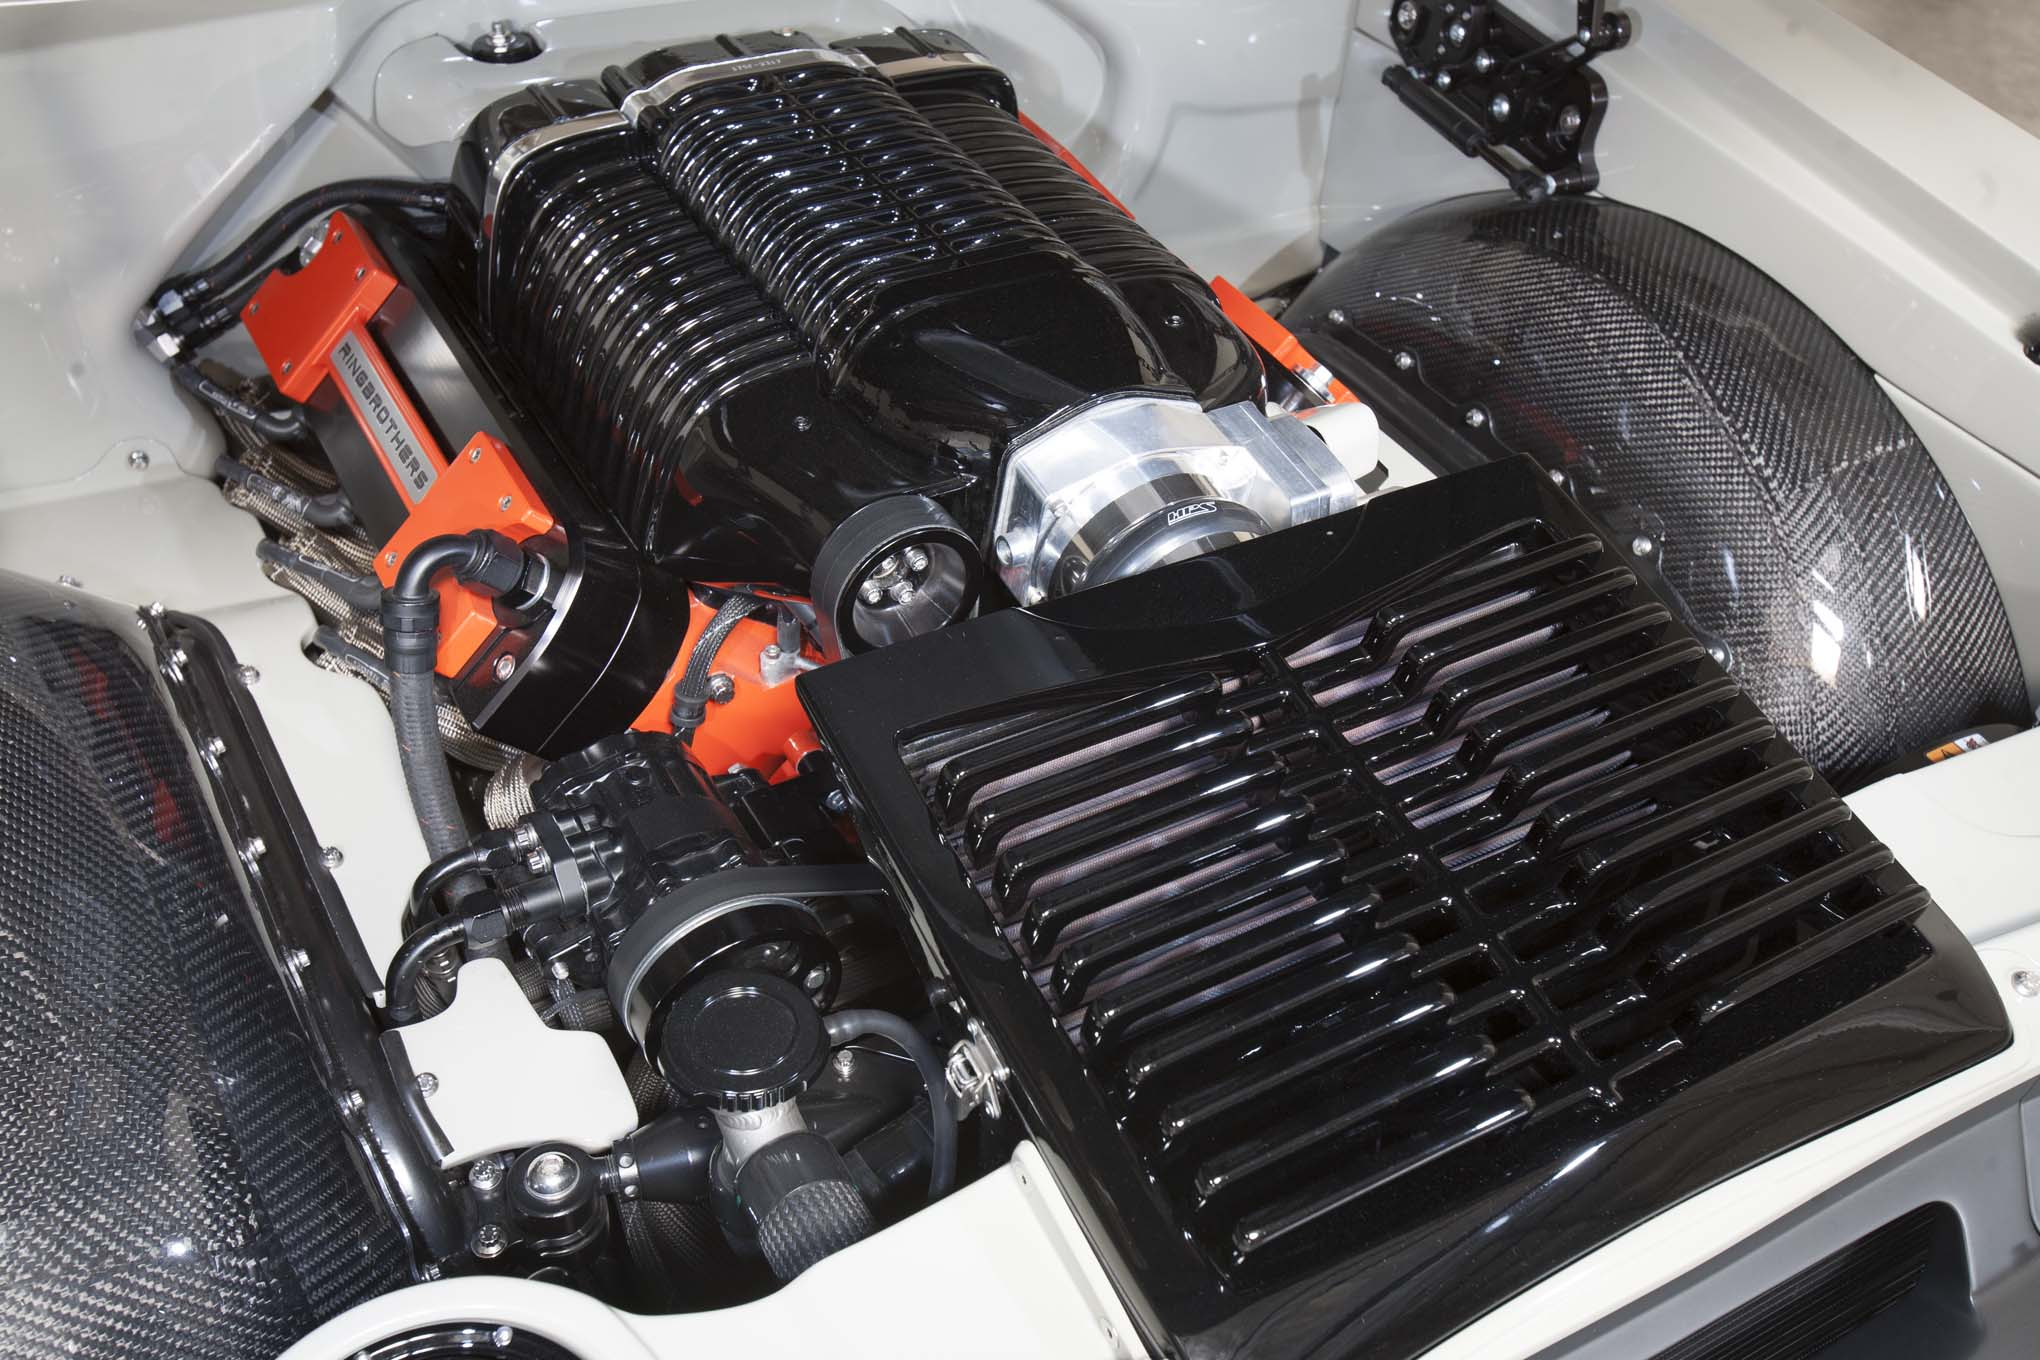 A Holley Dominator ECU tuned by Gary at Wegner Motorsports controls fuel and spark timing to the 416ci LS. Ringbrothers fabricated the ribbed covers on either side of the Whipple supercharger that hide the fuel rails and injectors. It also designed and built the custom air cleaner and valve covers. Below the core support, tucked out of sight, are the Afco radiator and Spal electric fans.